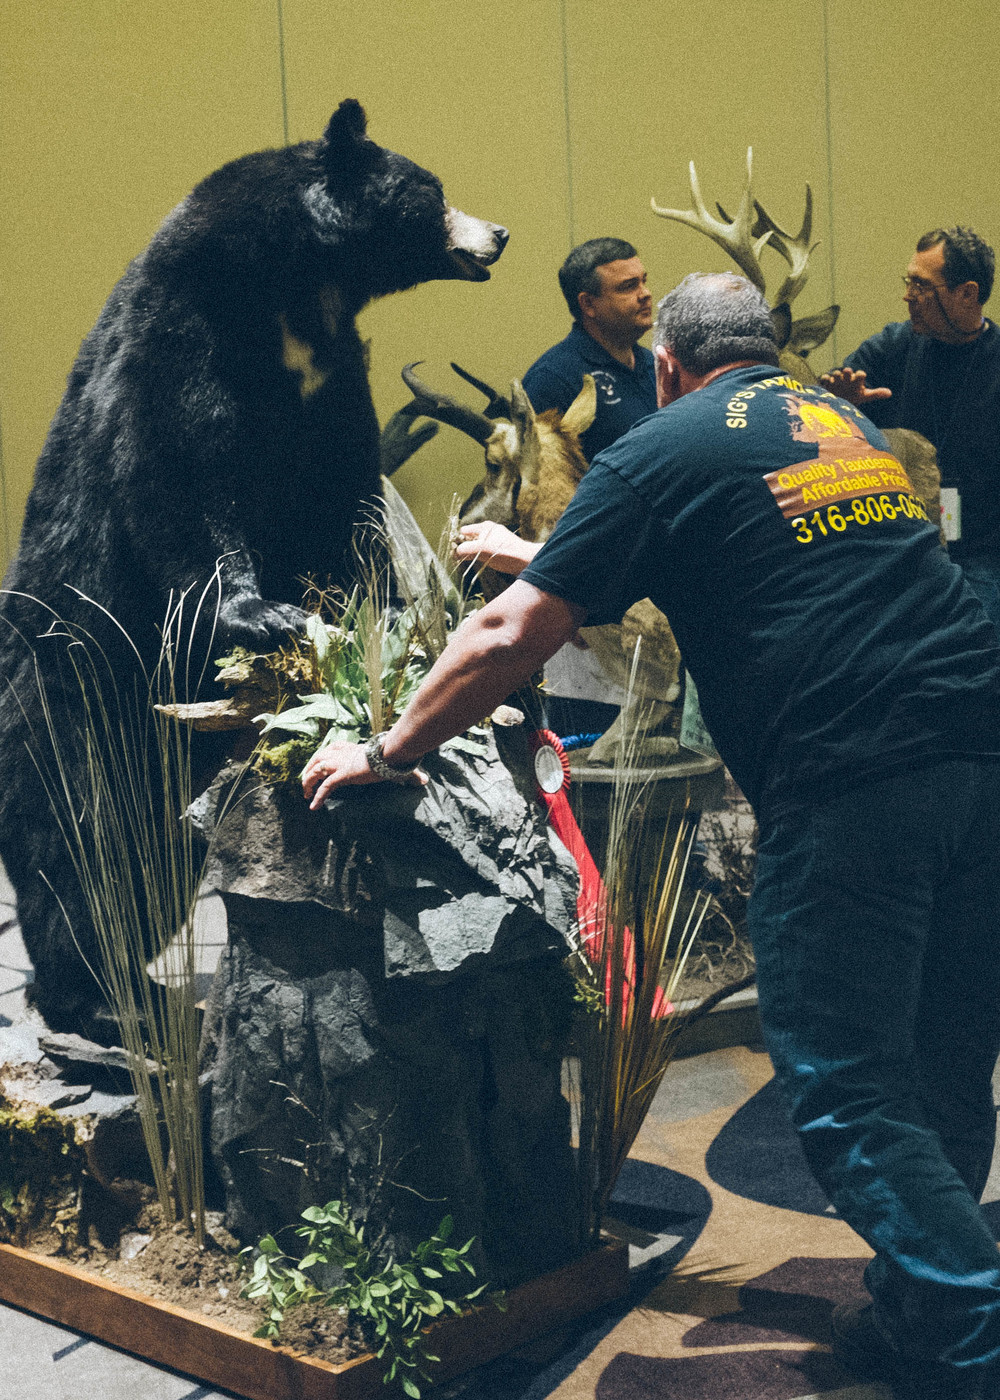 When I saw that the annual Wichita Taxidermy show was downtown I could not resist going.